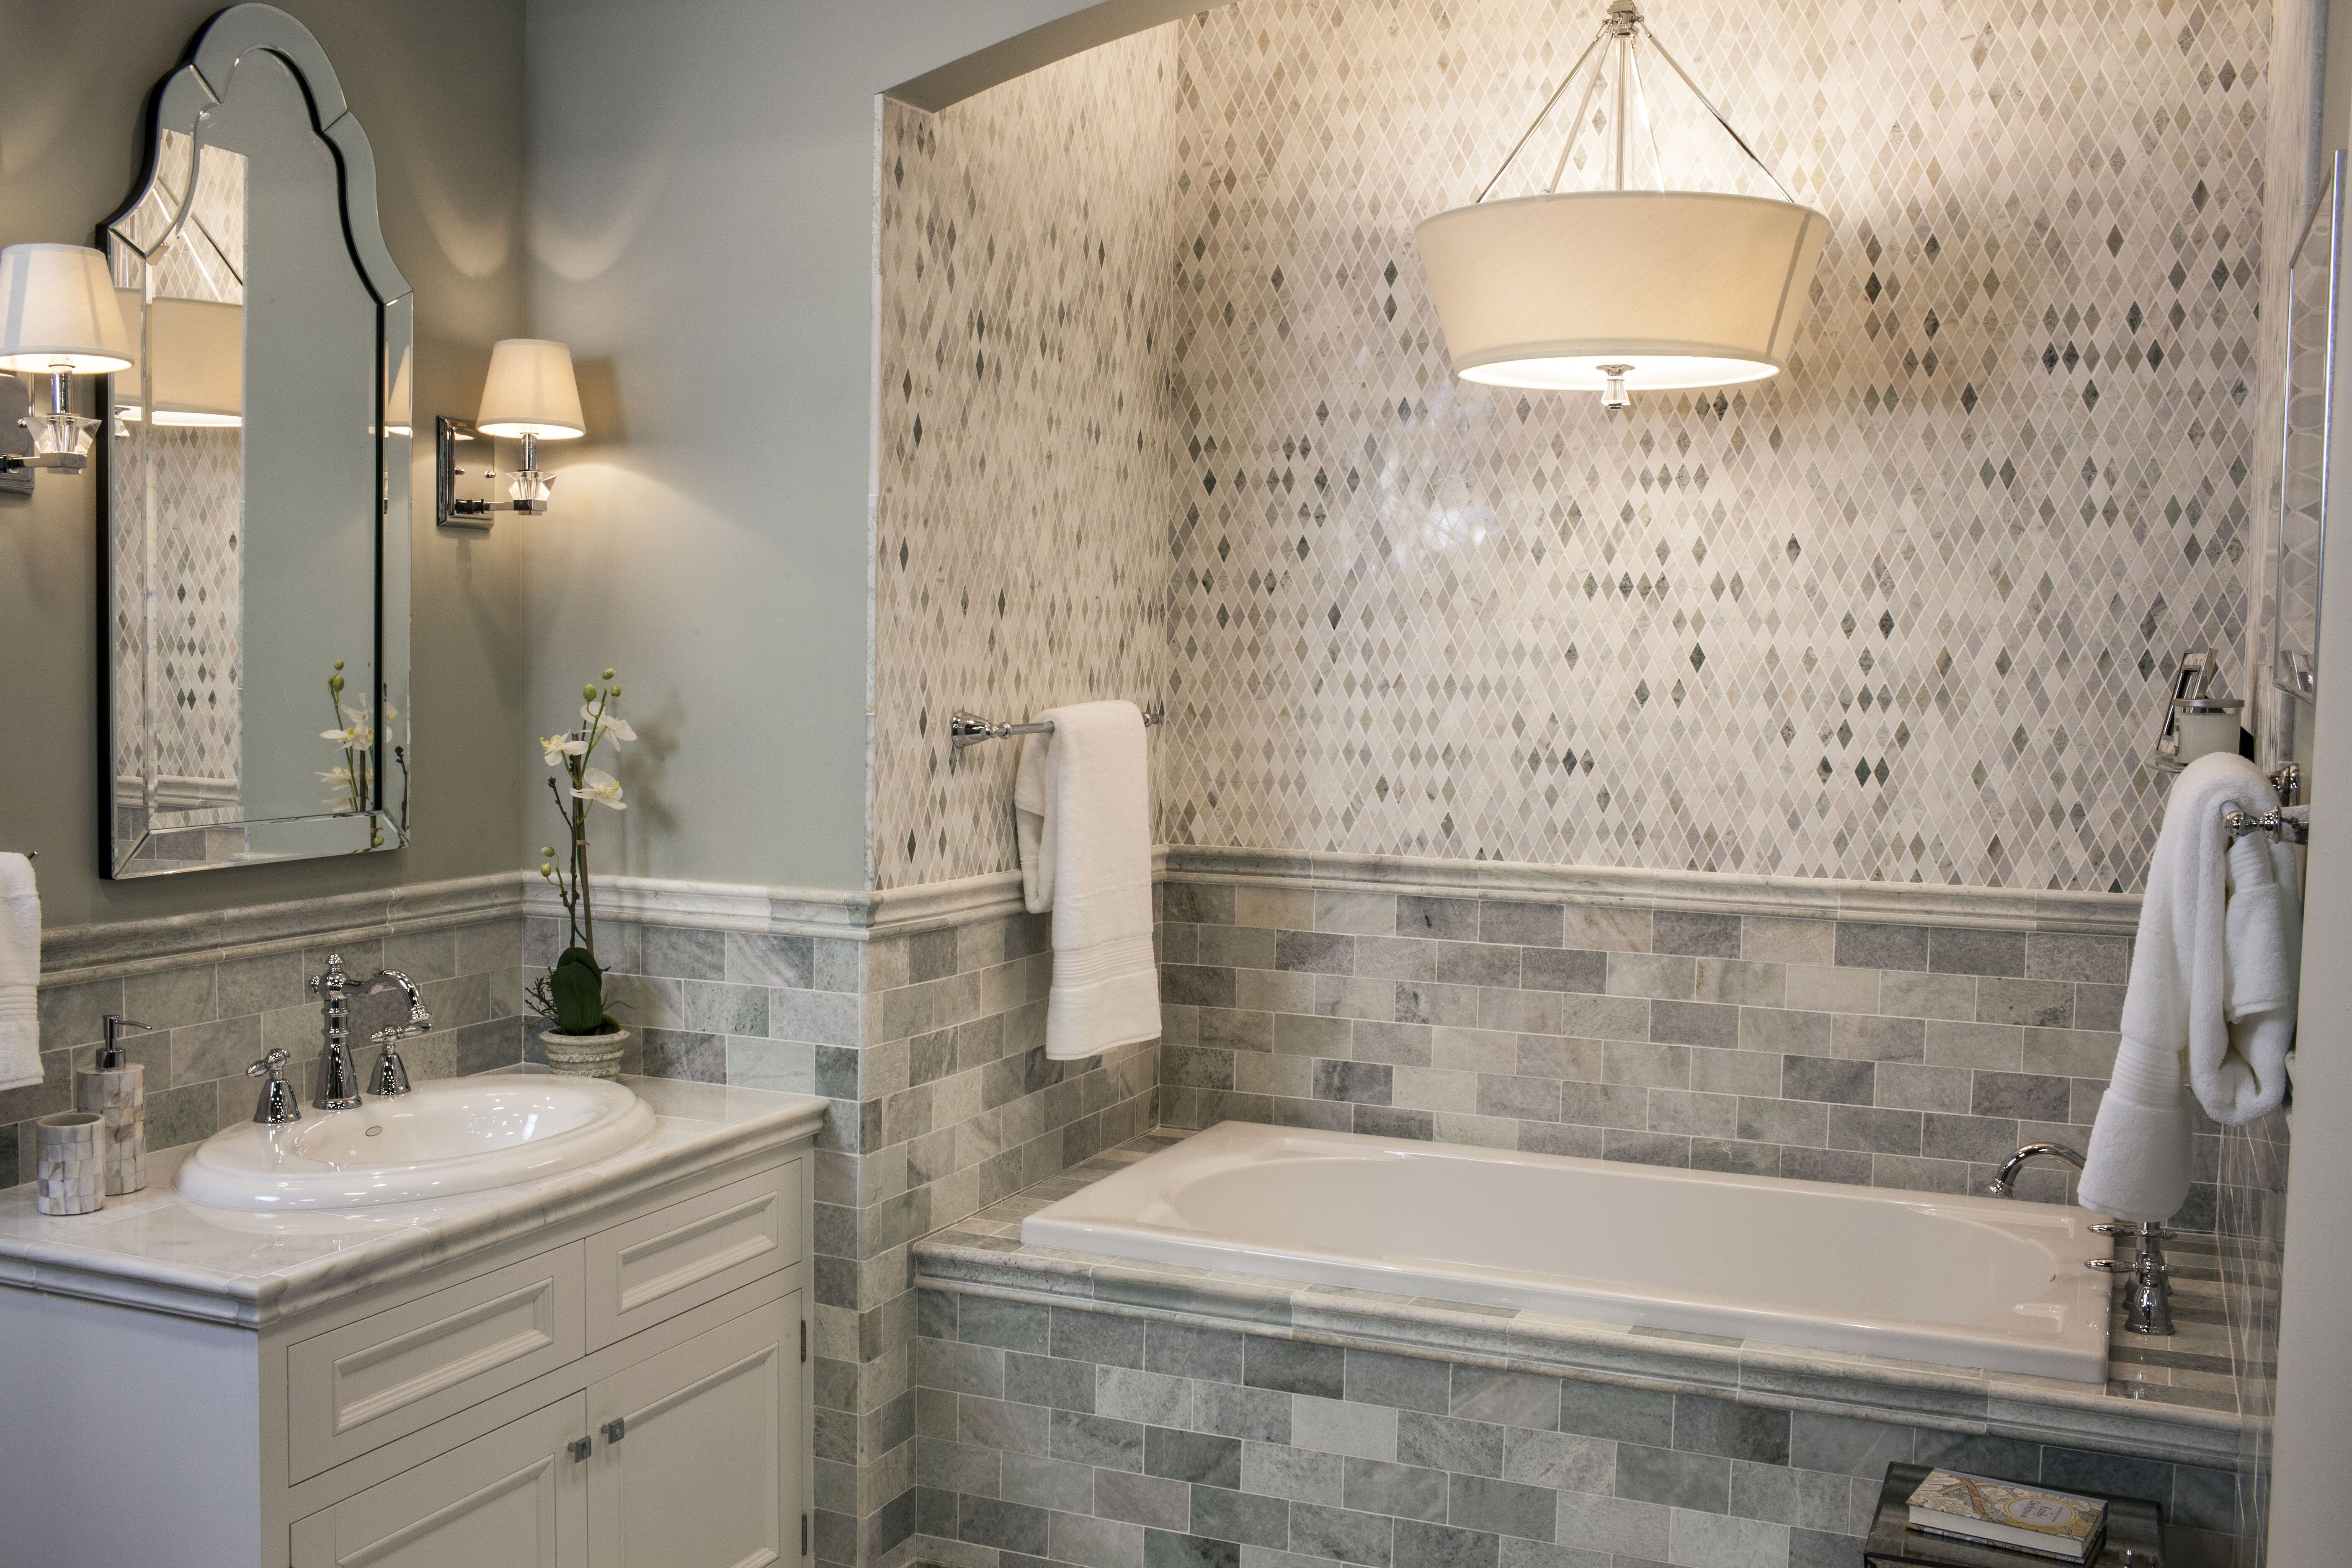 The luxurious Biltmore Marble tile bathroom The